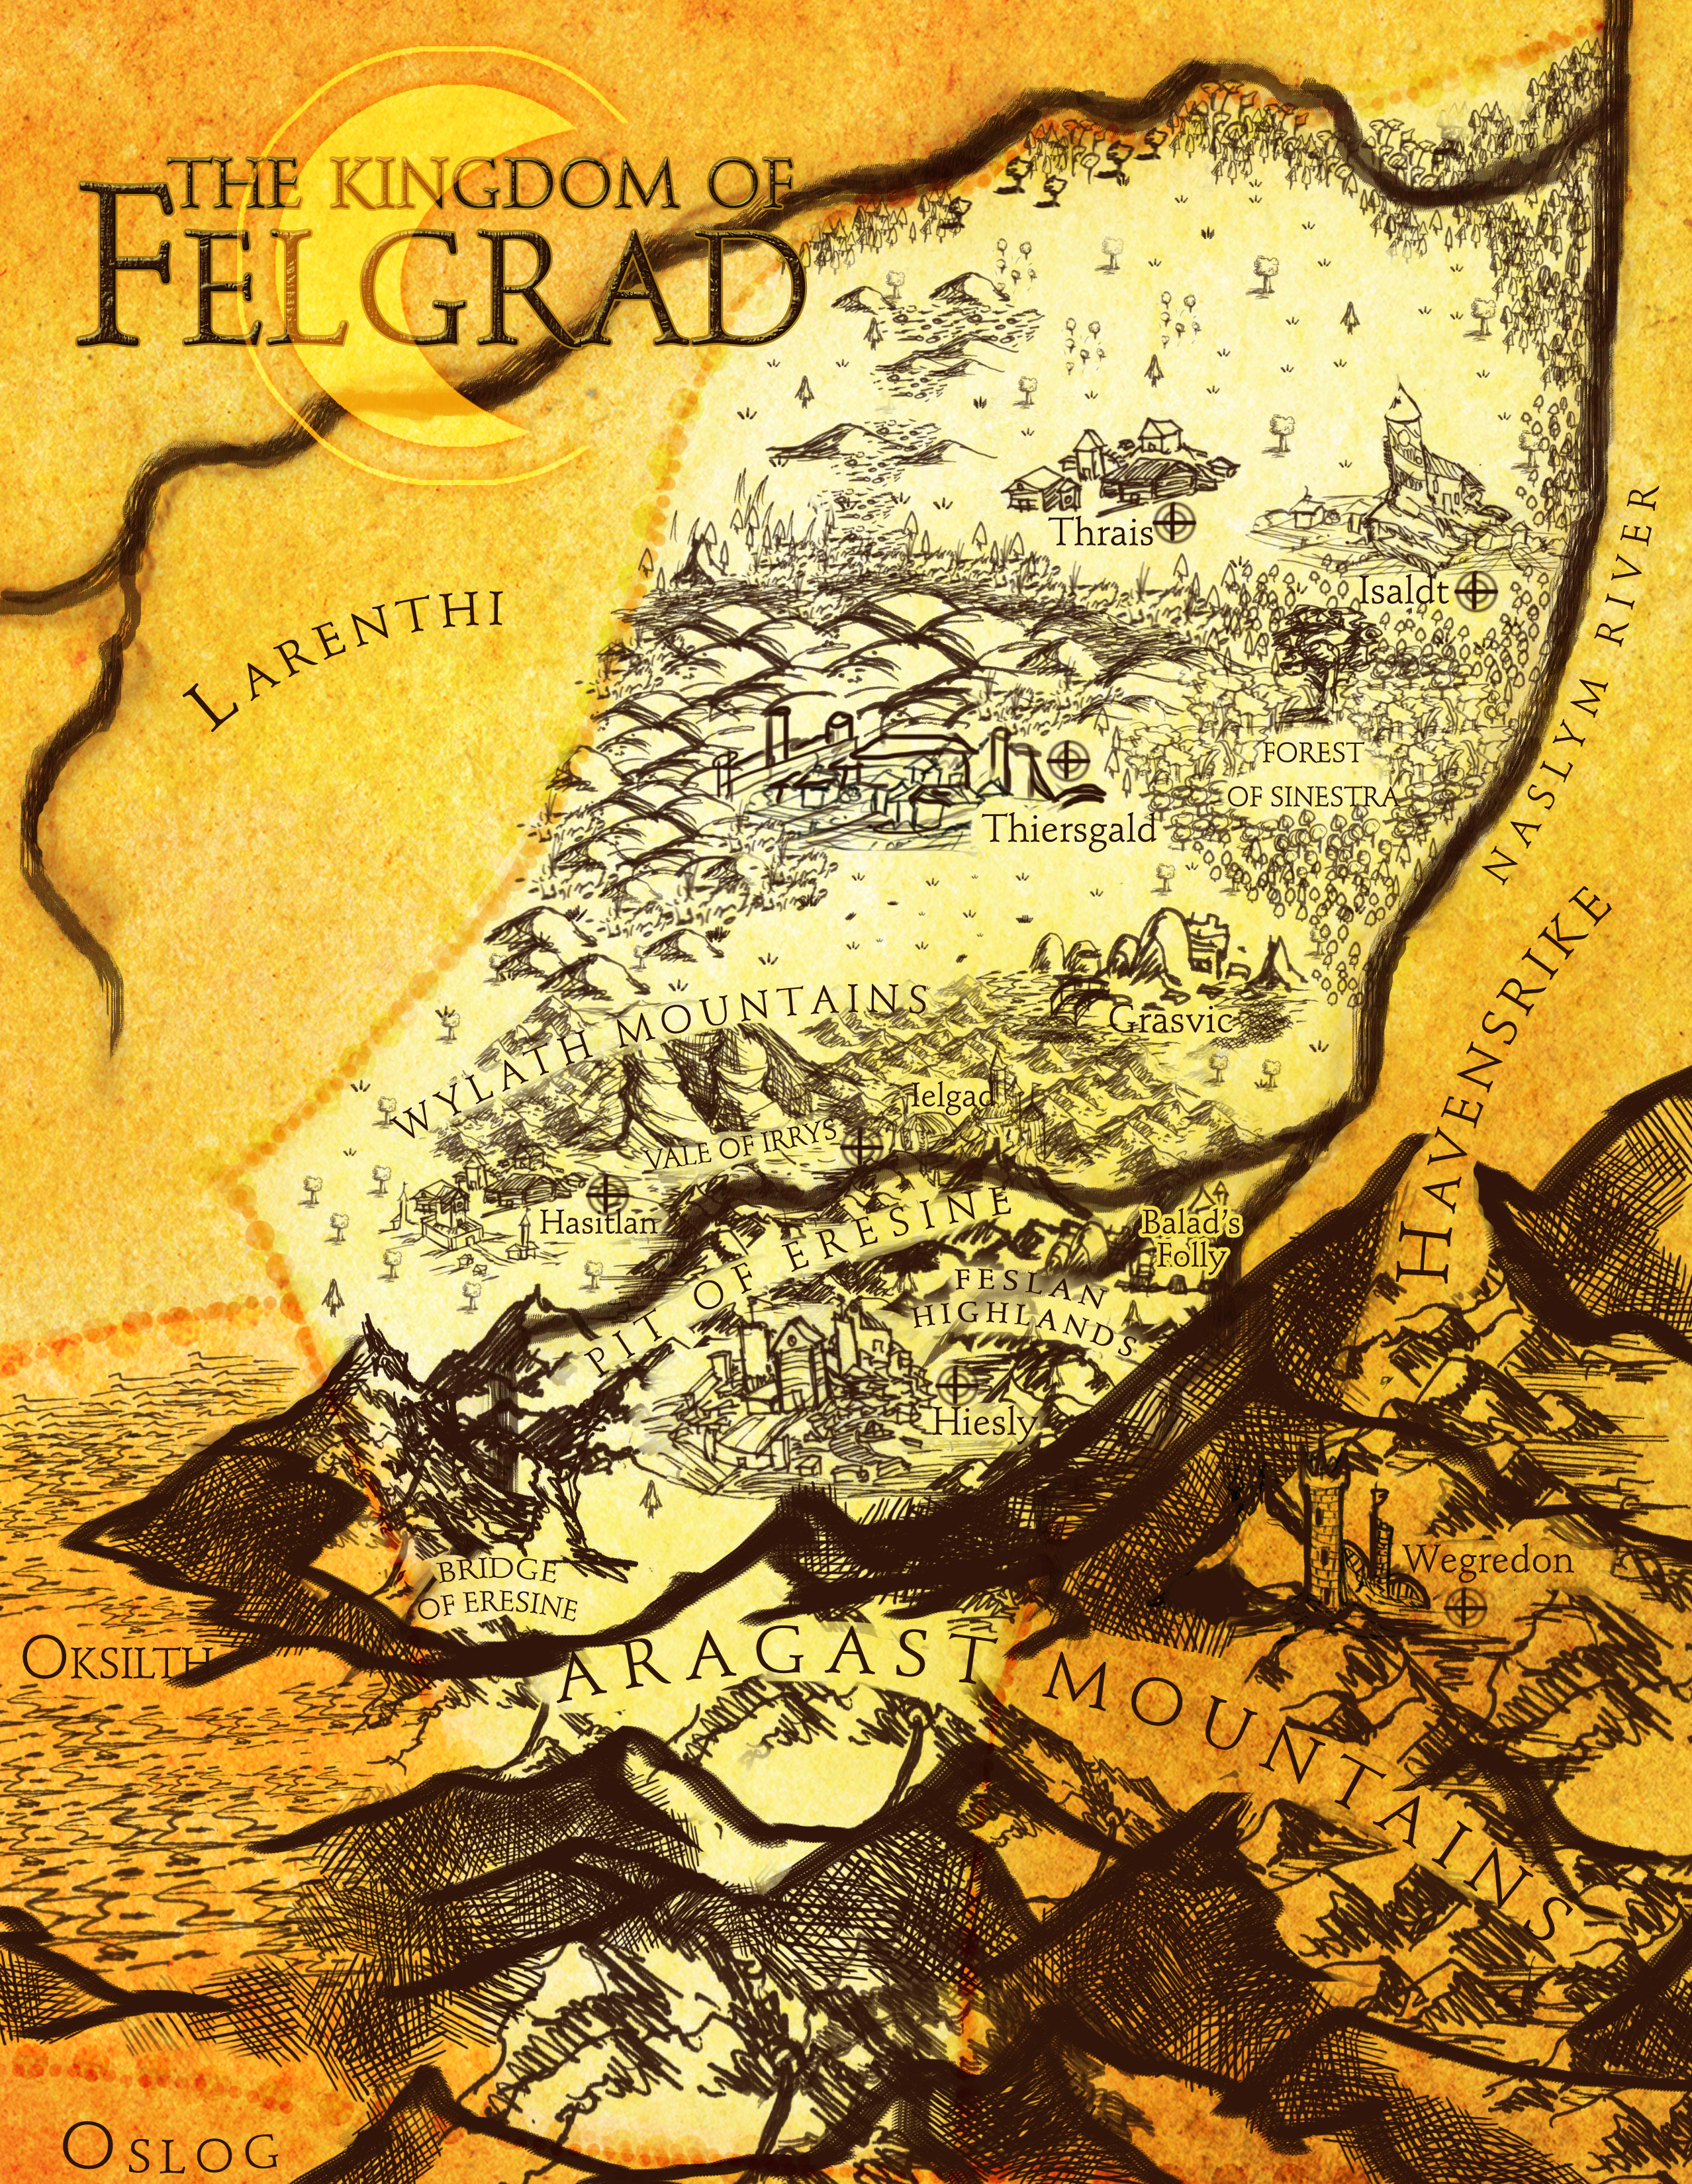 Map of Felgrad